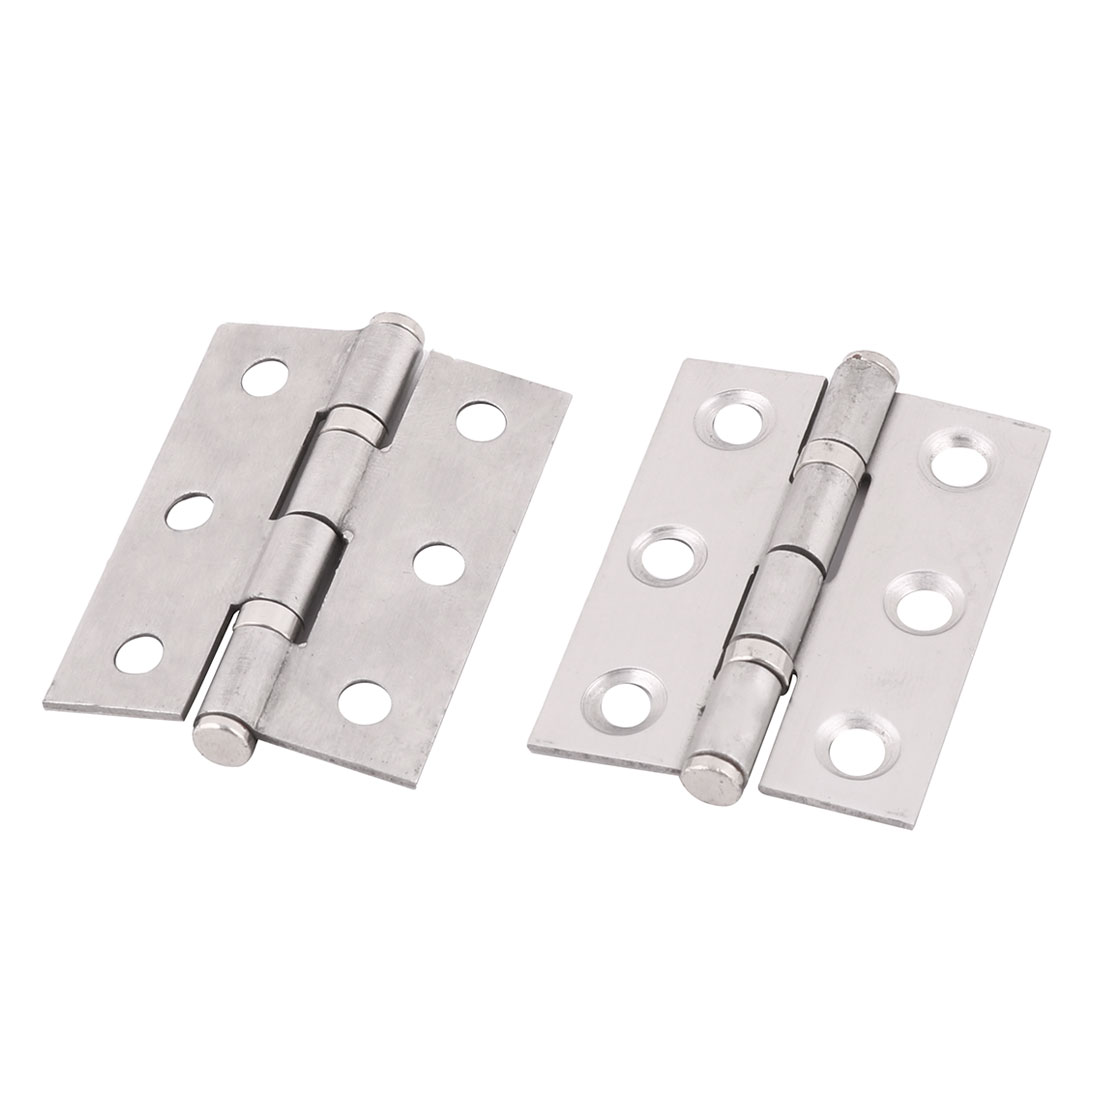 "2"" Length Home School Stainless Steel Cupboard Cabinet Gate Door Hinges 2pcs - image 4 de 4"